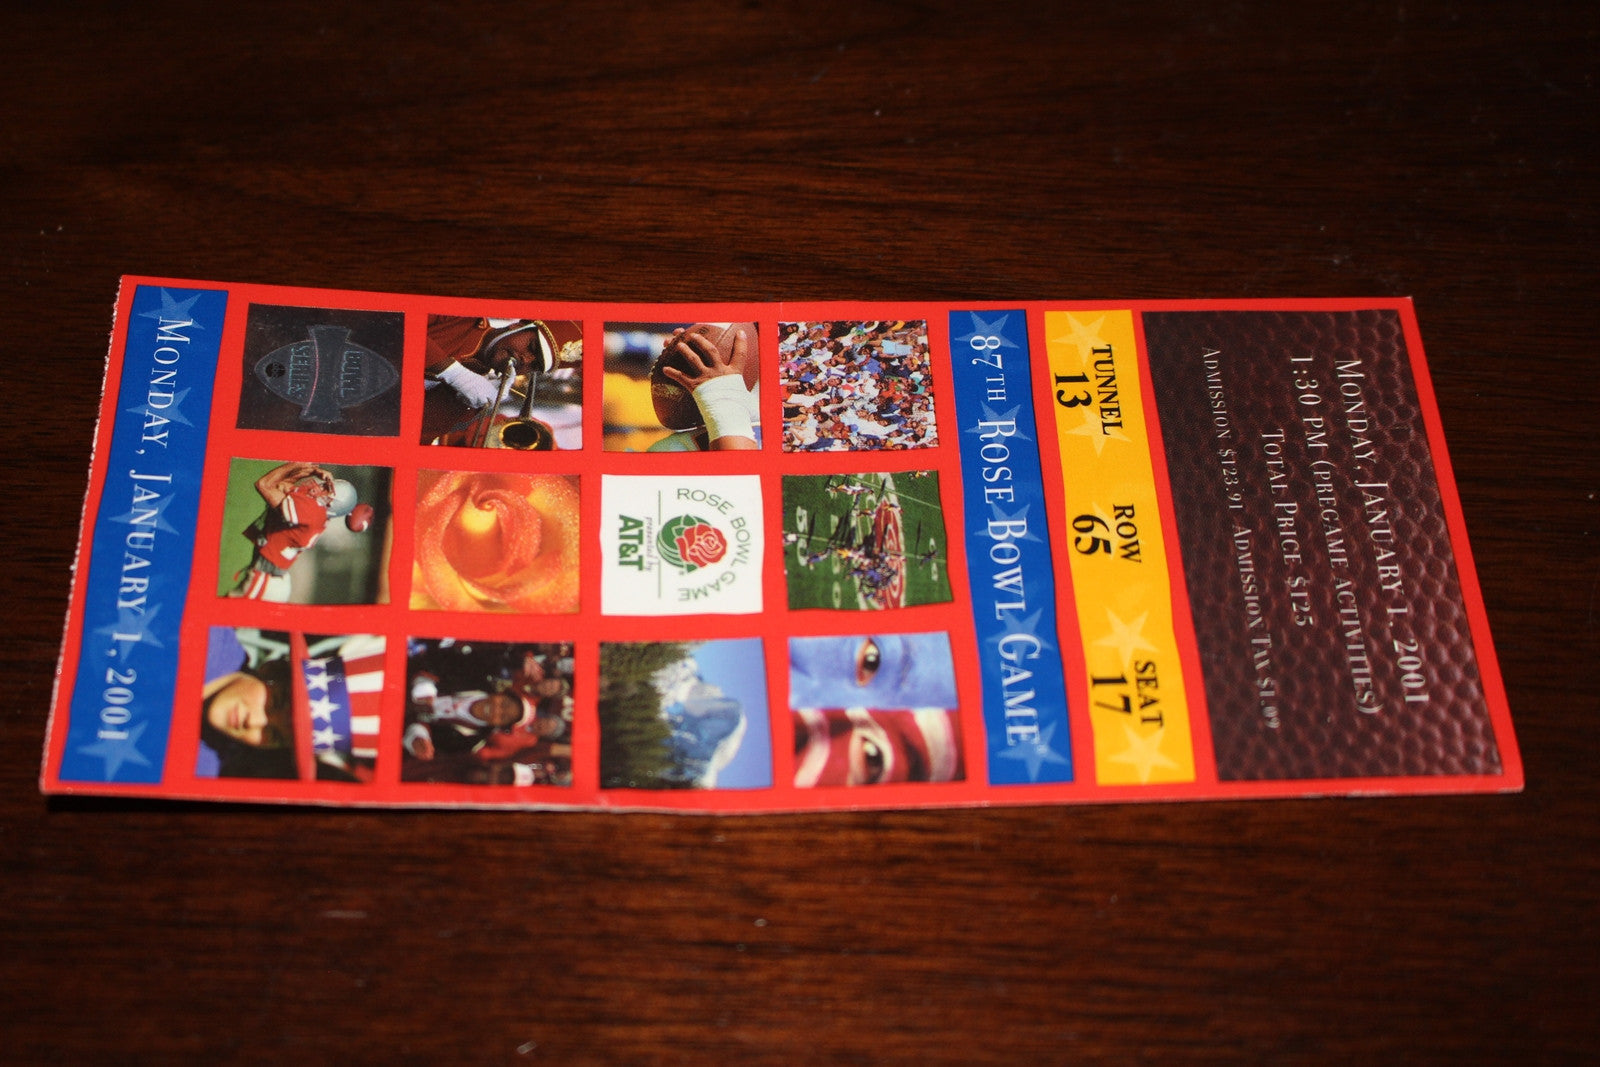 2001 Rose Bowl Purdue vs Washington Ticket Stub - Vintage Indy Sports